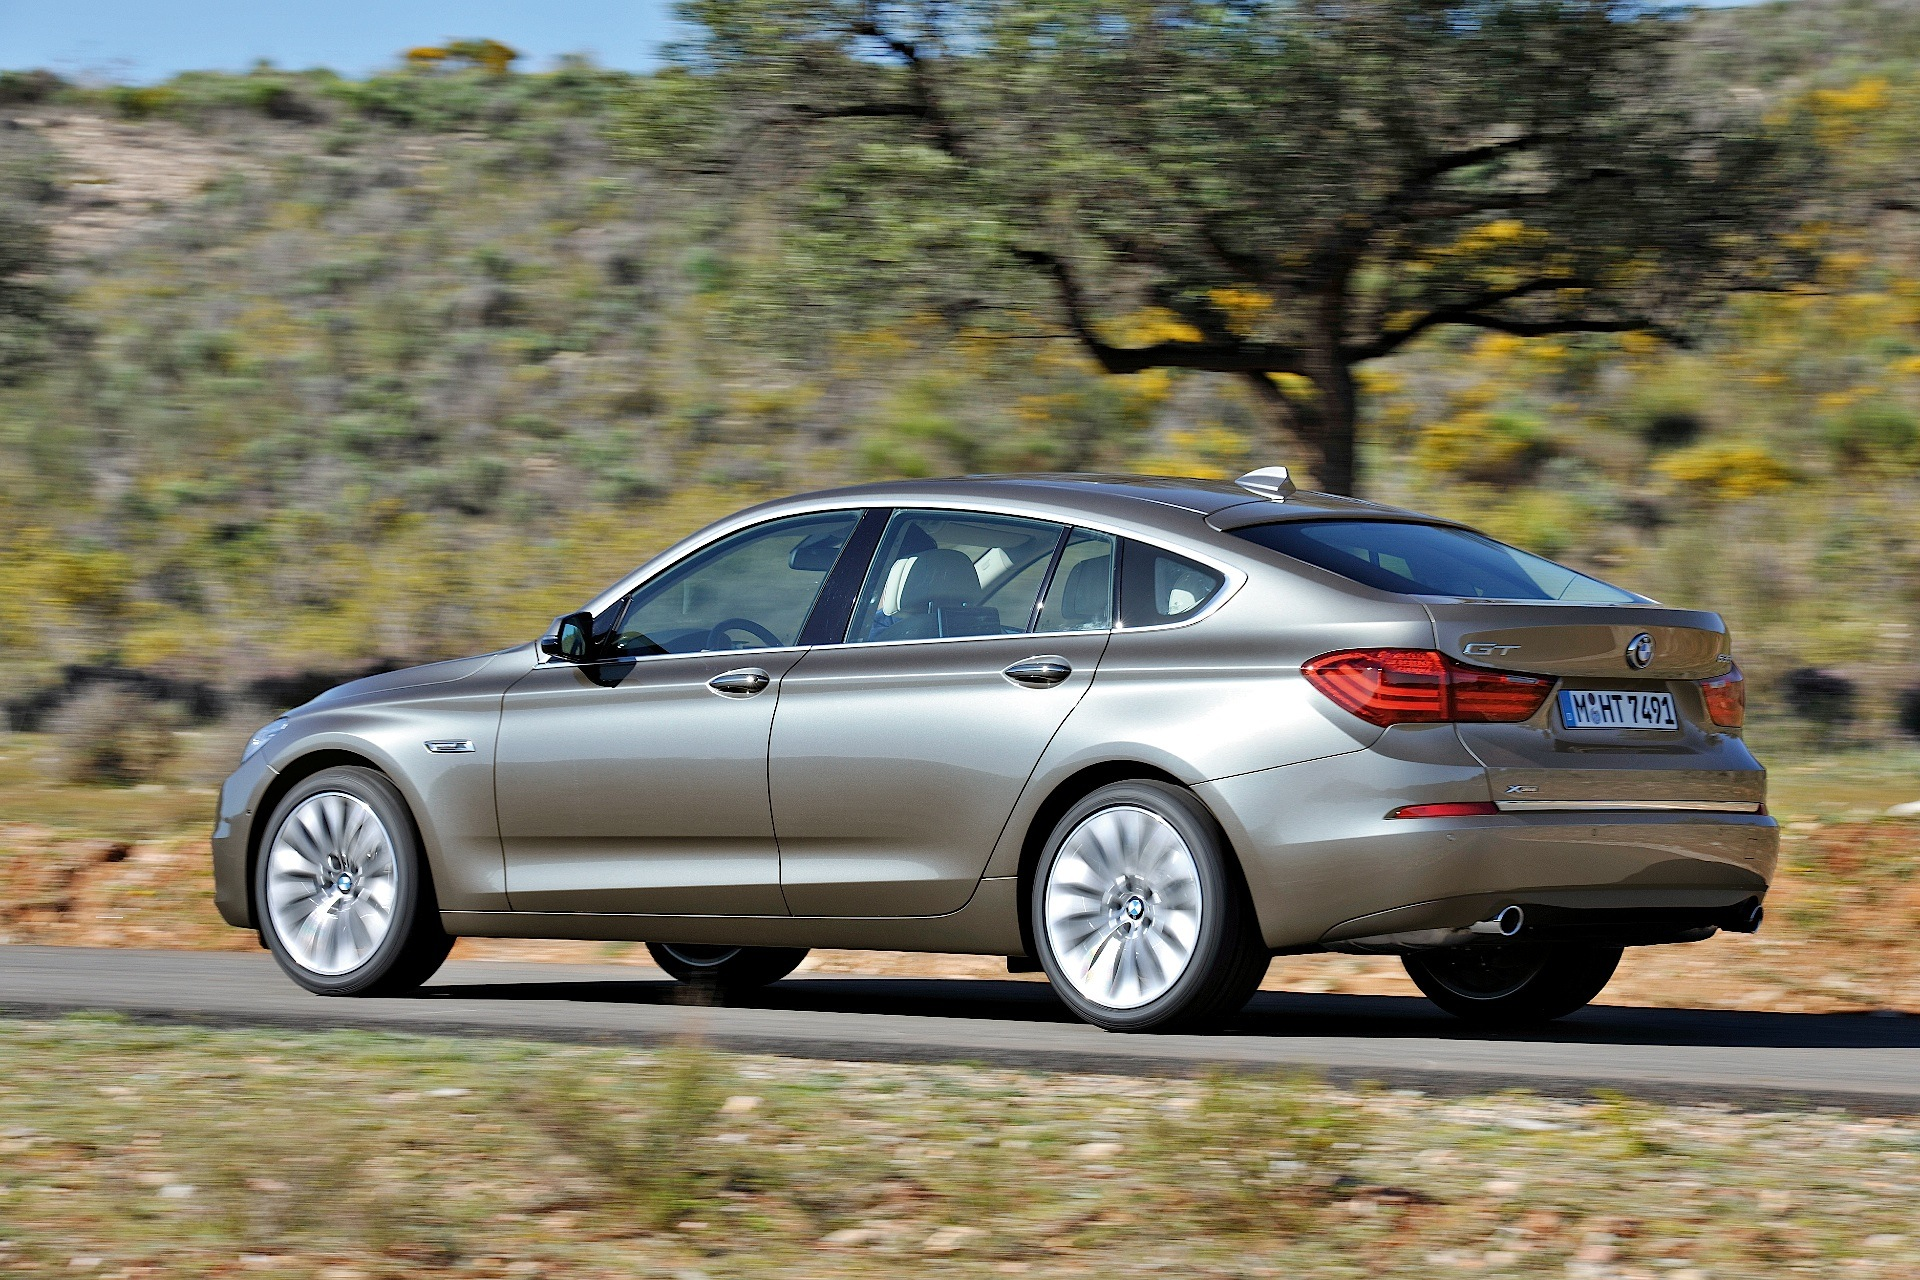 bmw 5 series gran turismo lci specs photos 2013 2014 2015 2016 2017 2018 2019. Black Bedroom Furniture Sets. Home Design Ideas